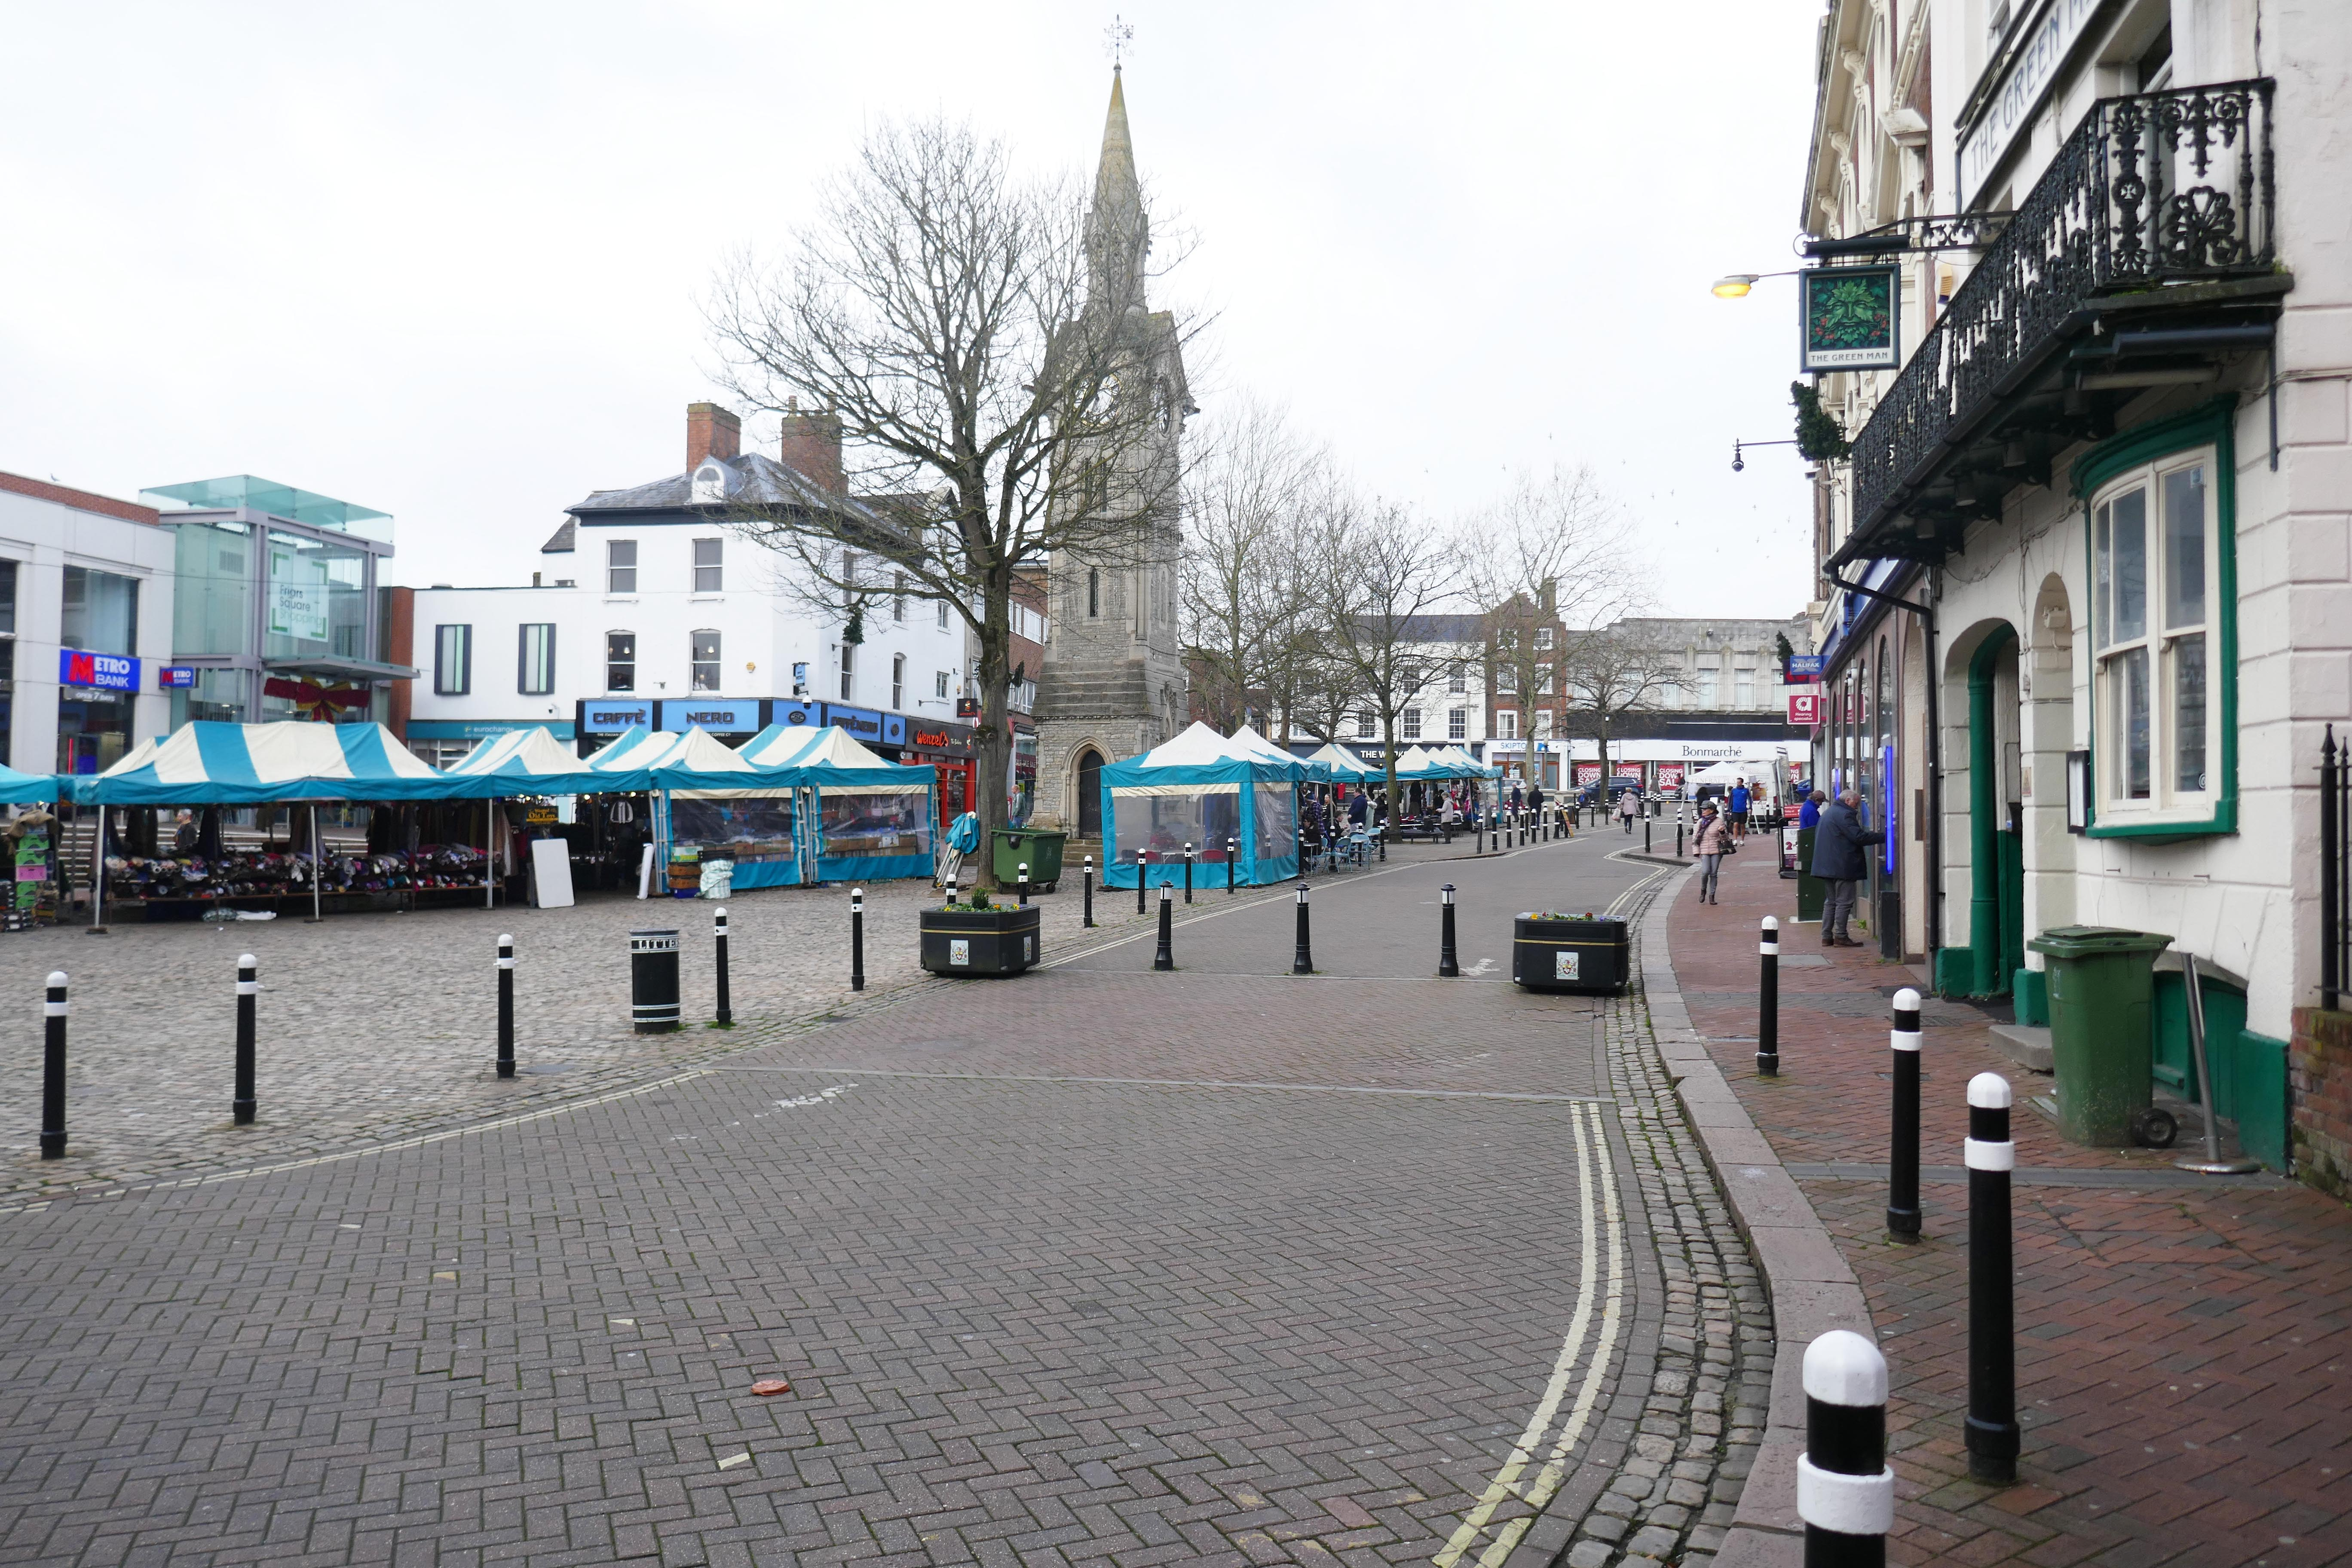 Photograph of Market Square on a market day